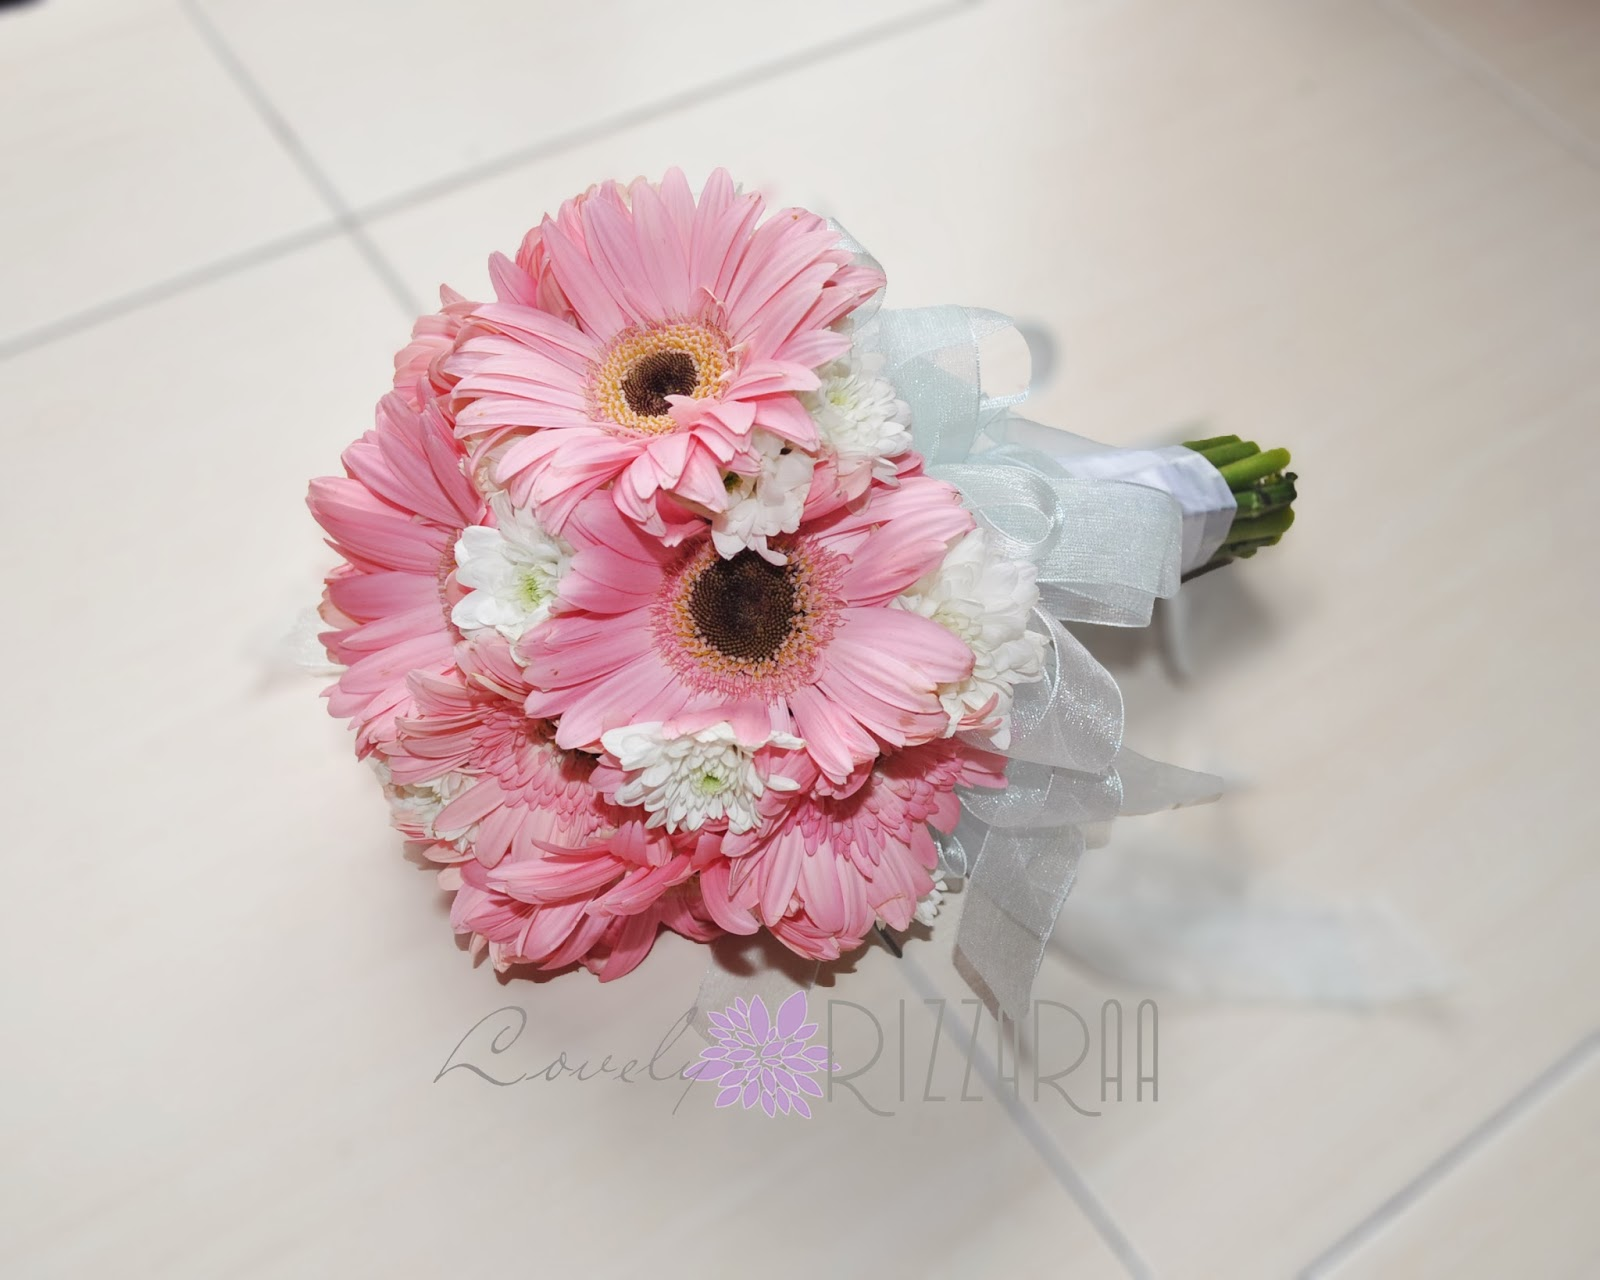 Lovely rizzaraa hand tied bridal bouquet pretty gerberas a cute hand bouquet for fazs engagement made from fresh flowers gerberas in coral and a little pinch white chrysanthemum to enlighten the colors izmirmasajfo